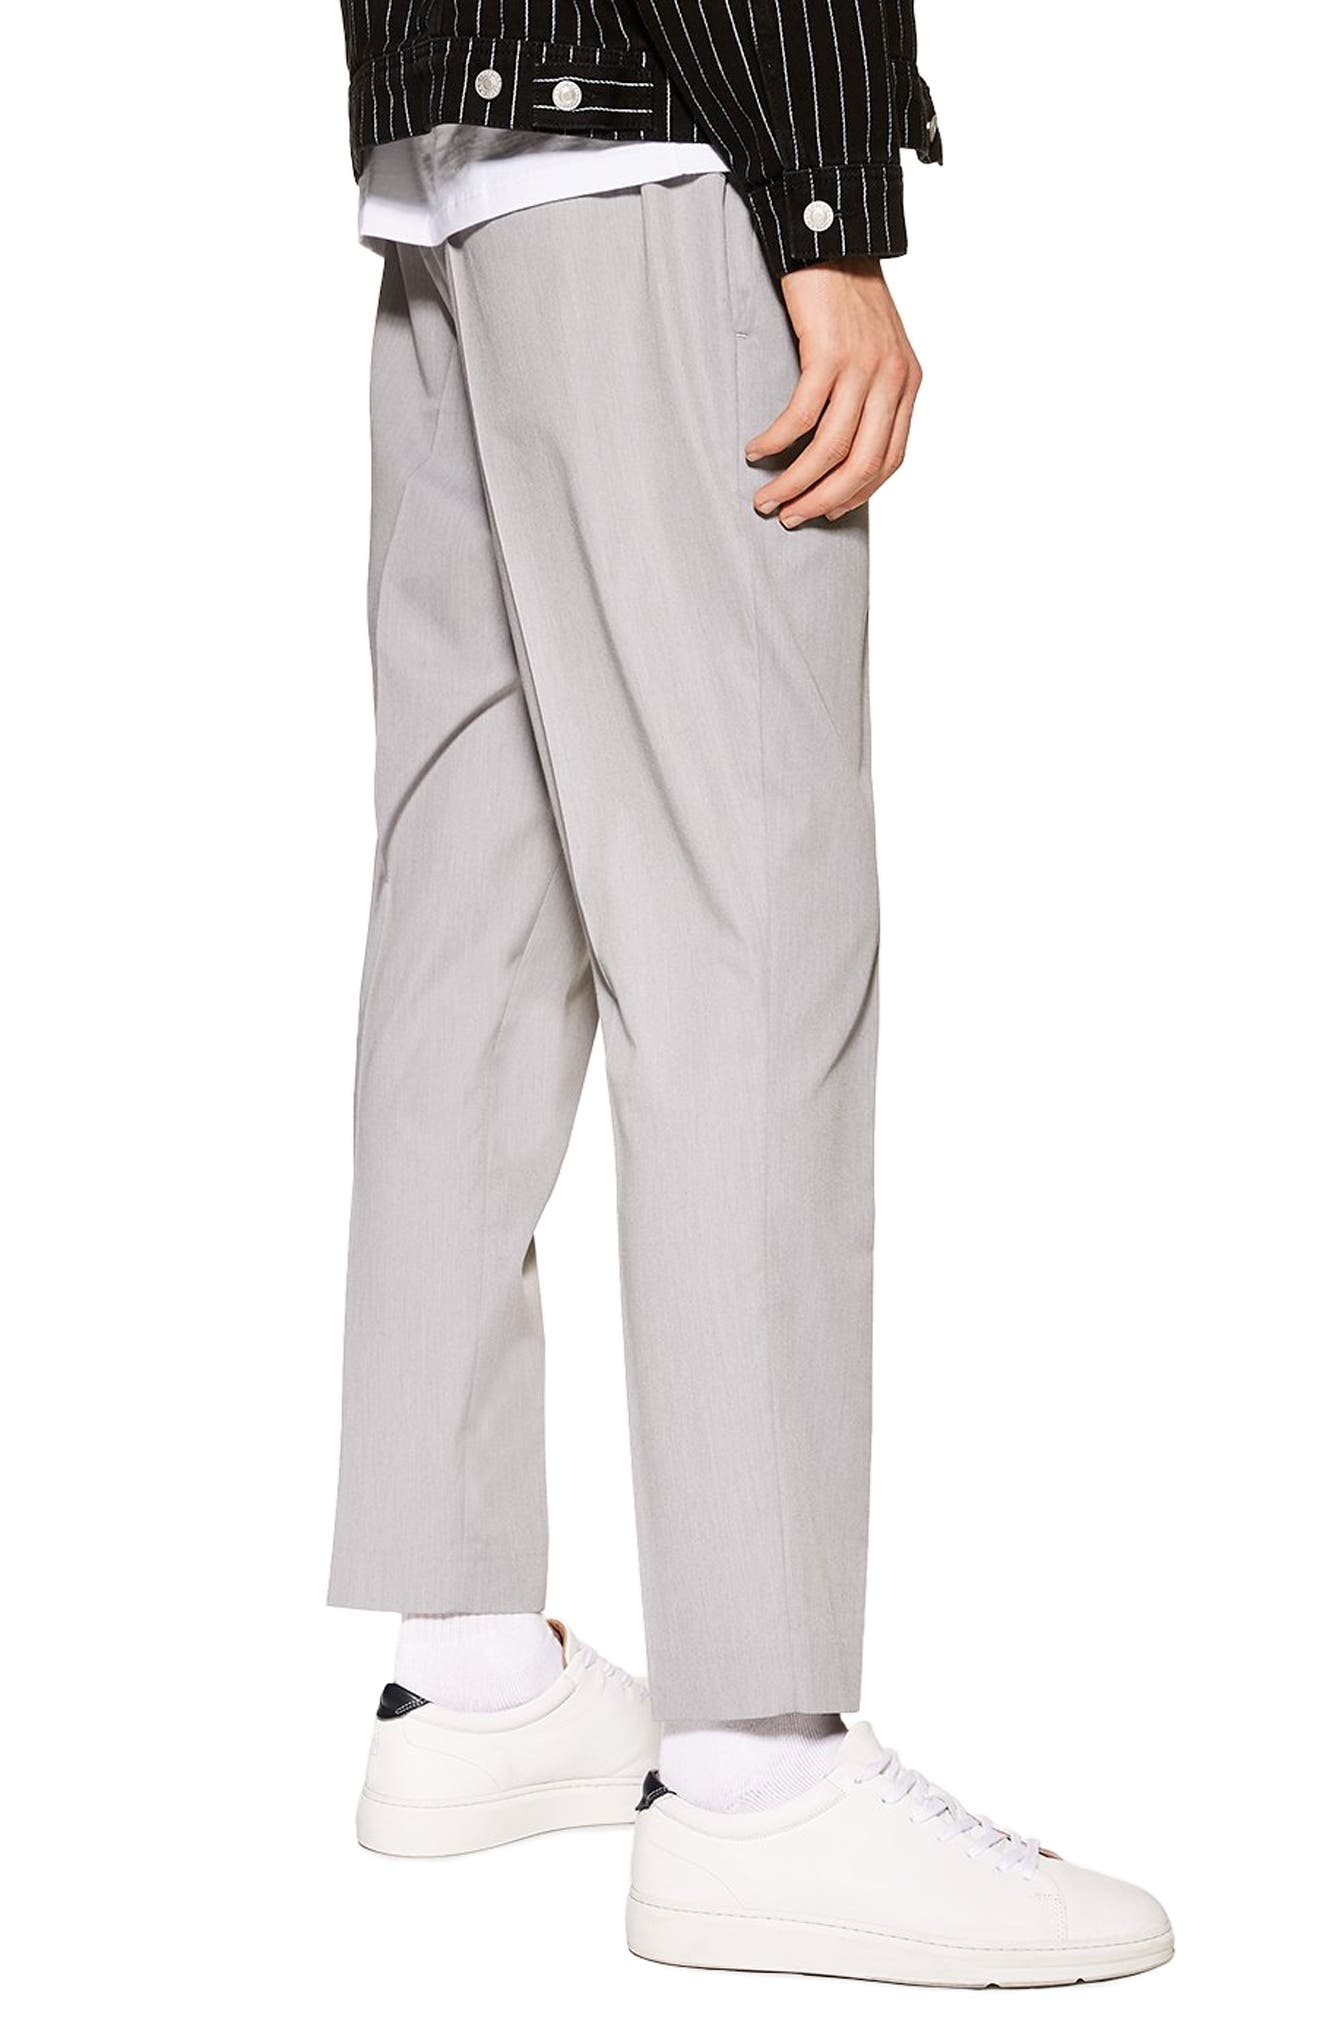 TOPMAN, Slim Fit Cropped Jogger Pants, Alternate thumbnail 2, color, GREY